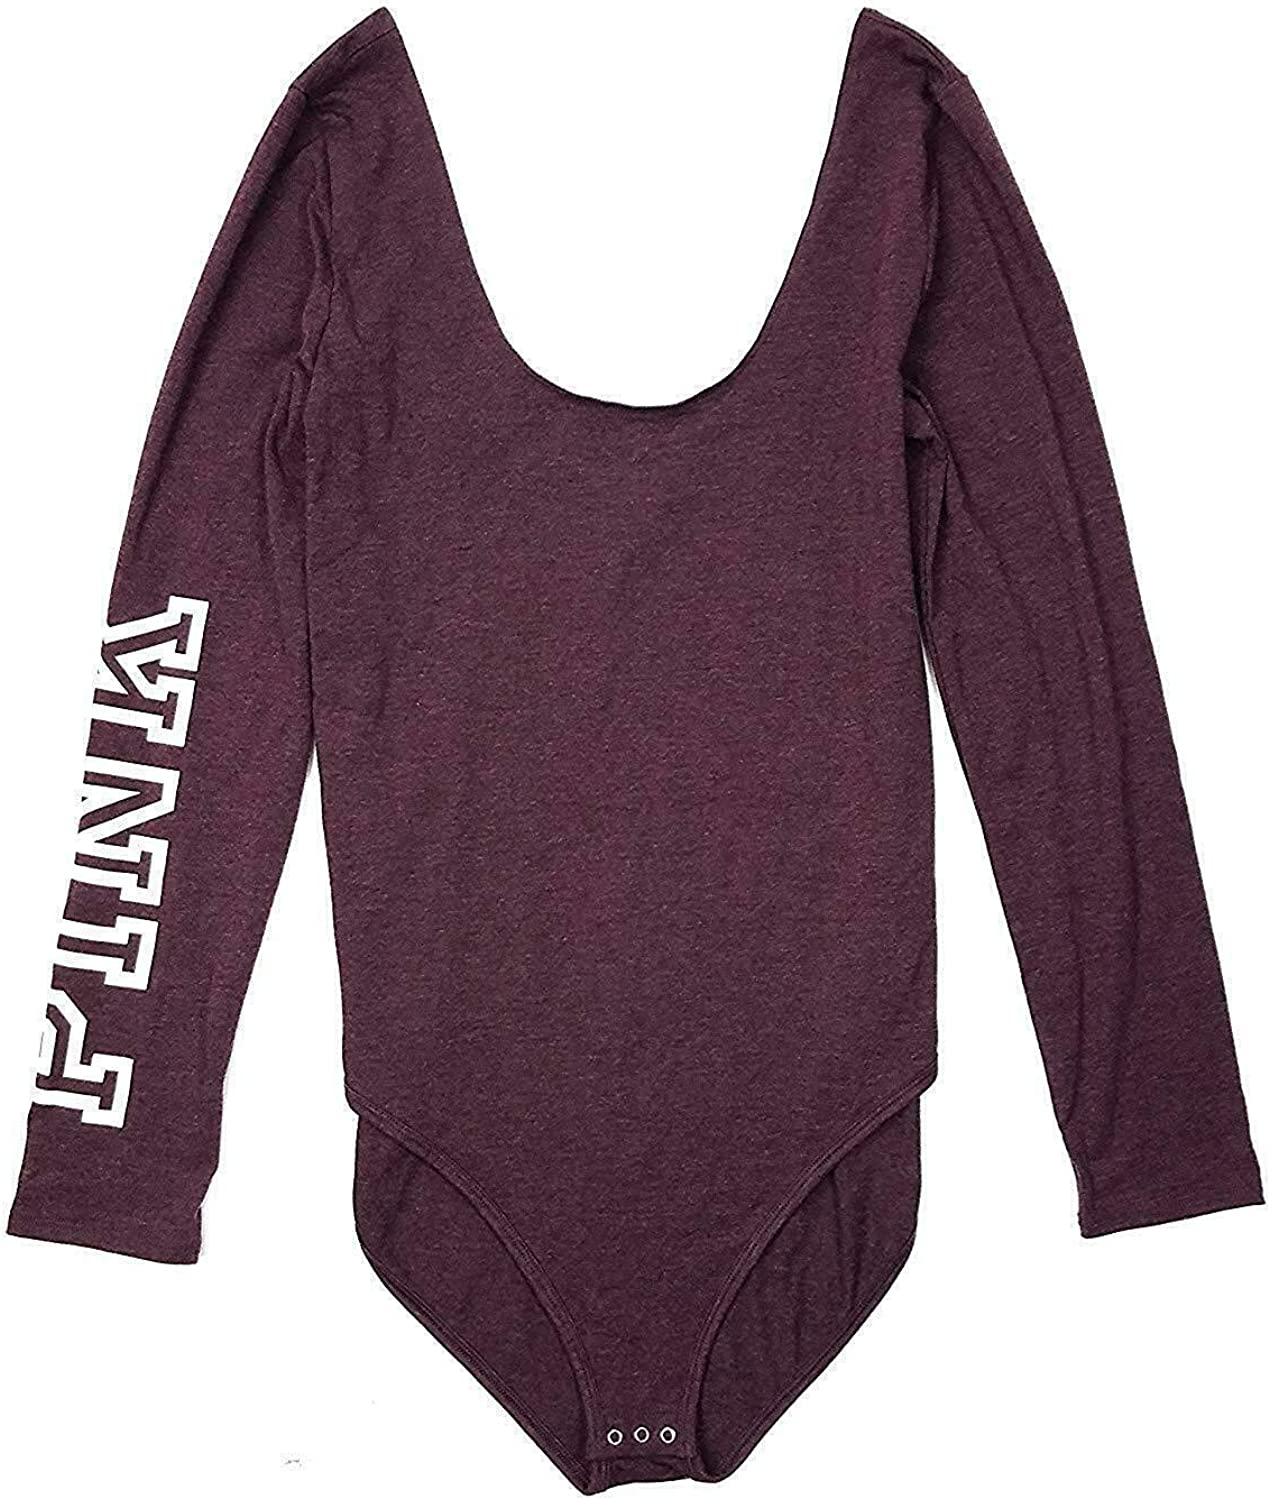 Victoria's Secret Pink Scoop Neck Bodysuit Tank Long Sleeve Color Maroon Size XSmall NWT